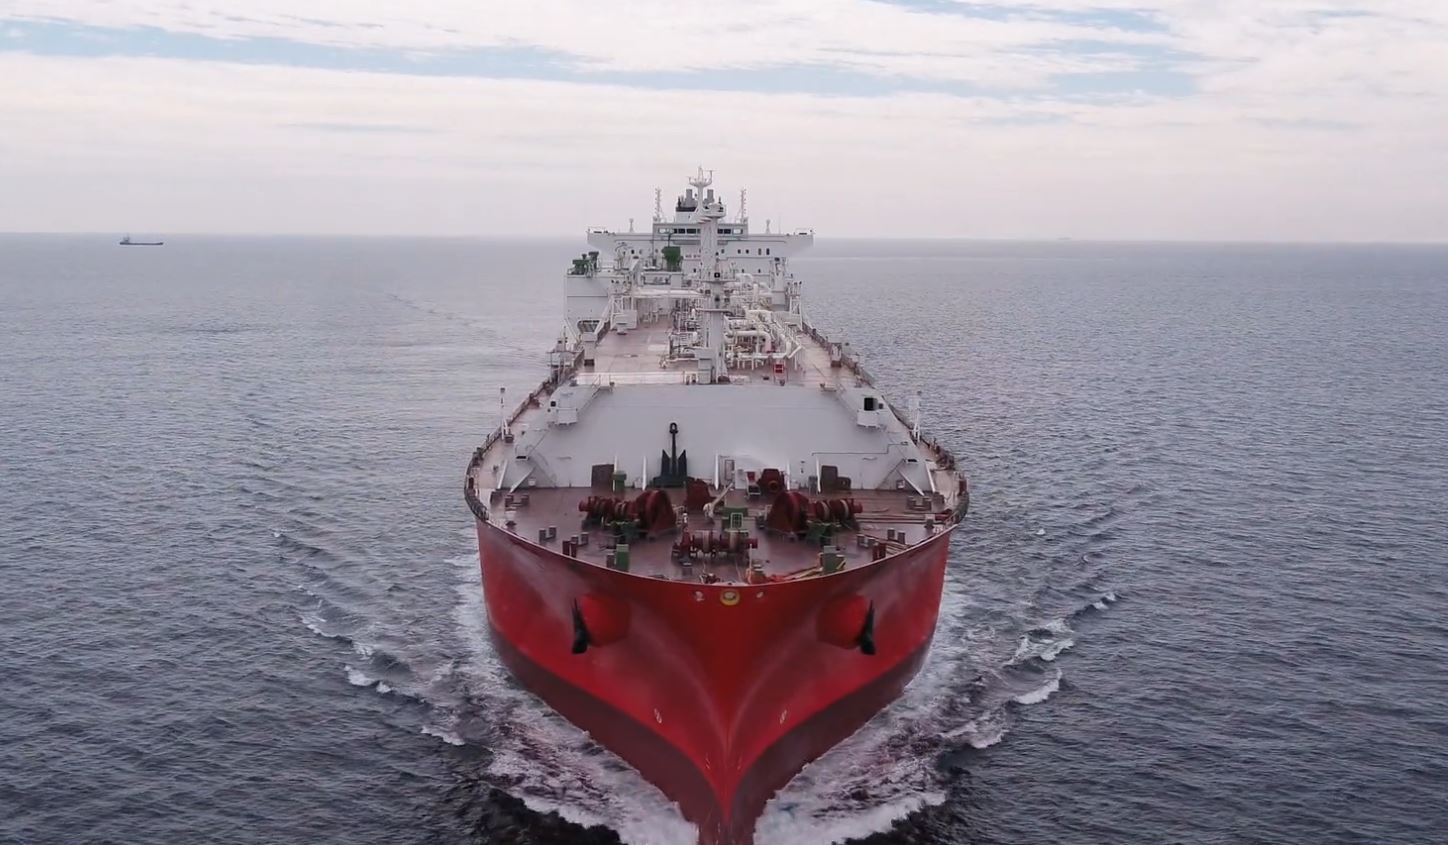 Denmark's Celsius welcomes new LNG carrier